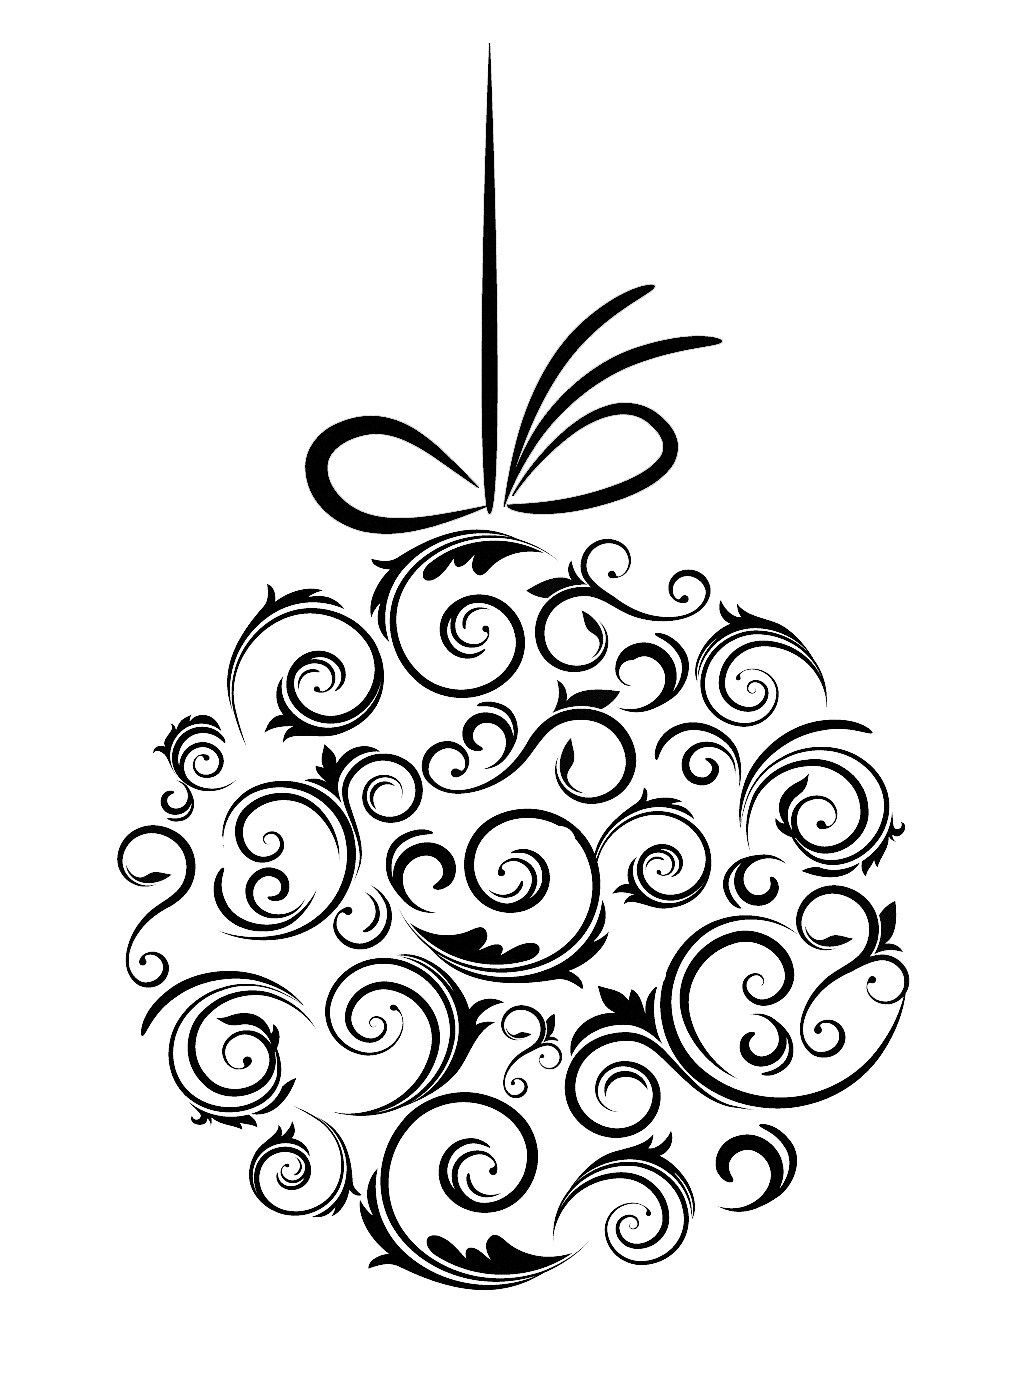 Decoration clipart images clip art freeuse download christmas decorations clipart black and white | Nice Decoration ... clip art freeuse download